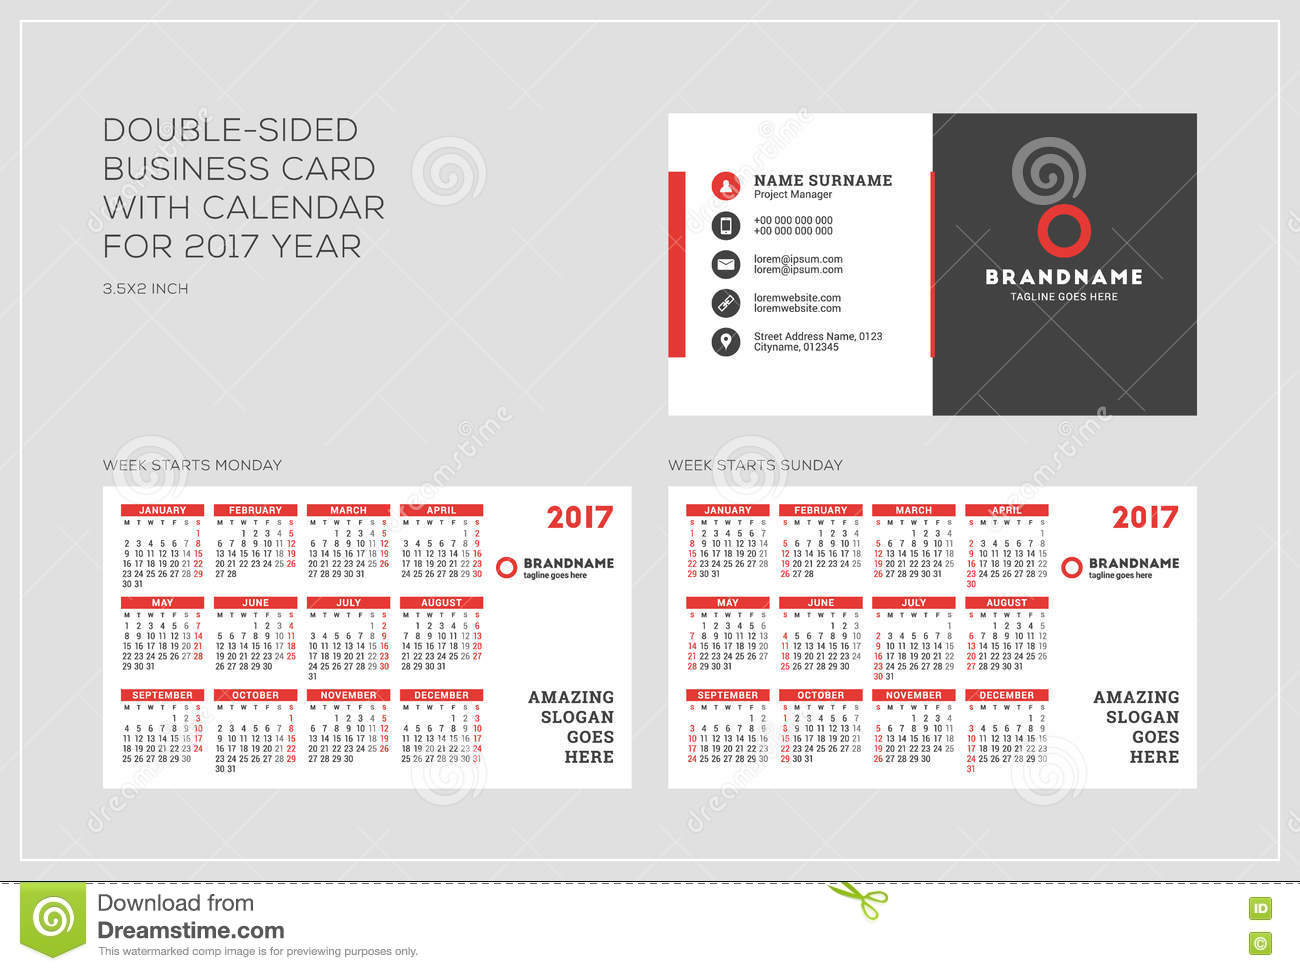 Doublesided Business Card Template With Calendar For Year - 2 sided business card template